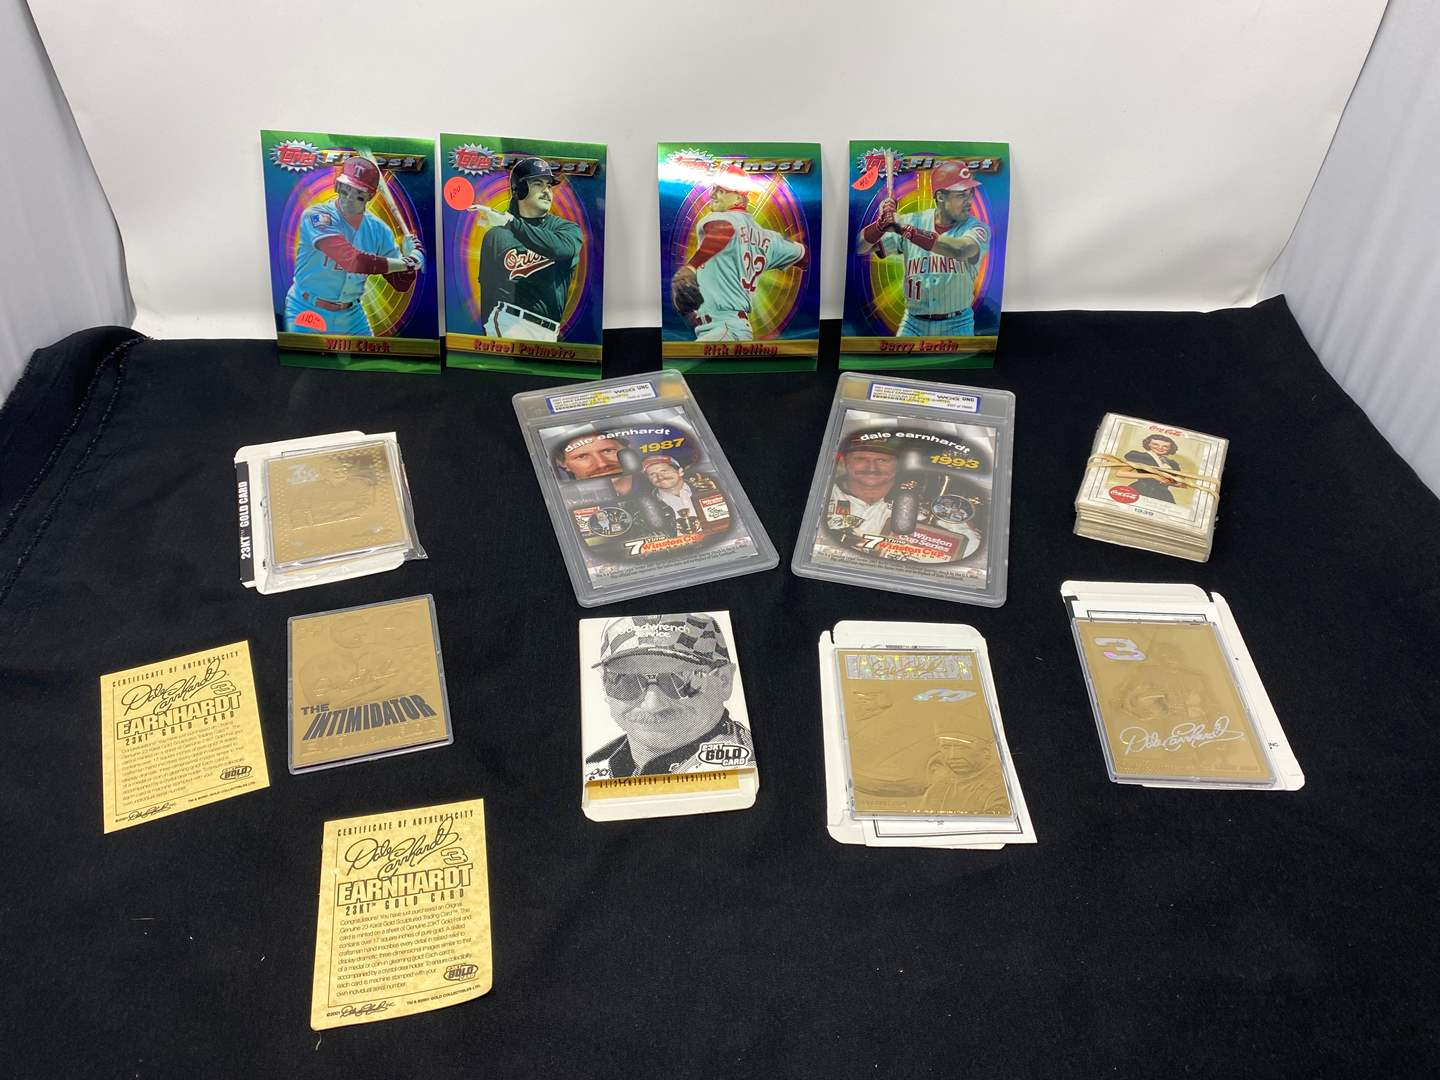 Lot # 173 - Dale Earnhardt Gold Collectors Cards, Dale Earnhardt State Quarters, Large Sports Cards, Coca-Cola Collector Cards (main image)